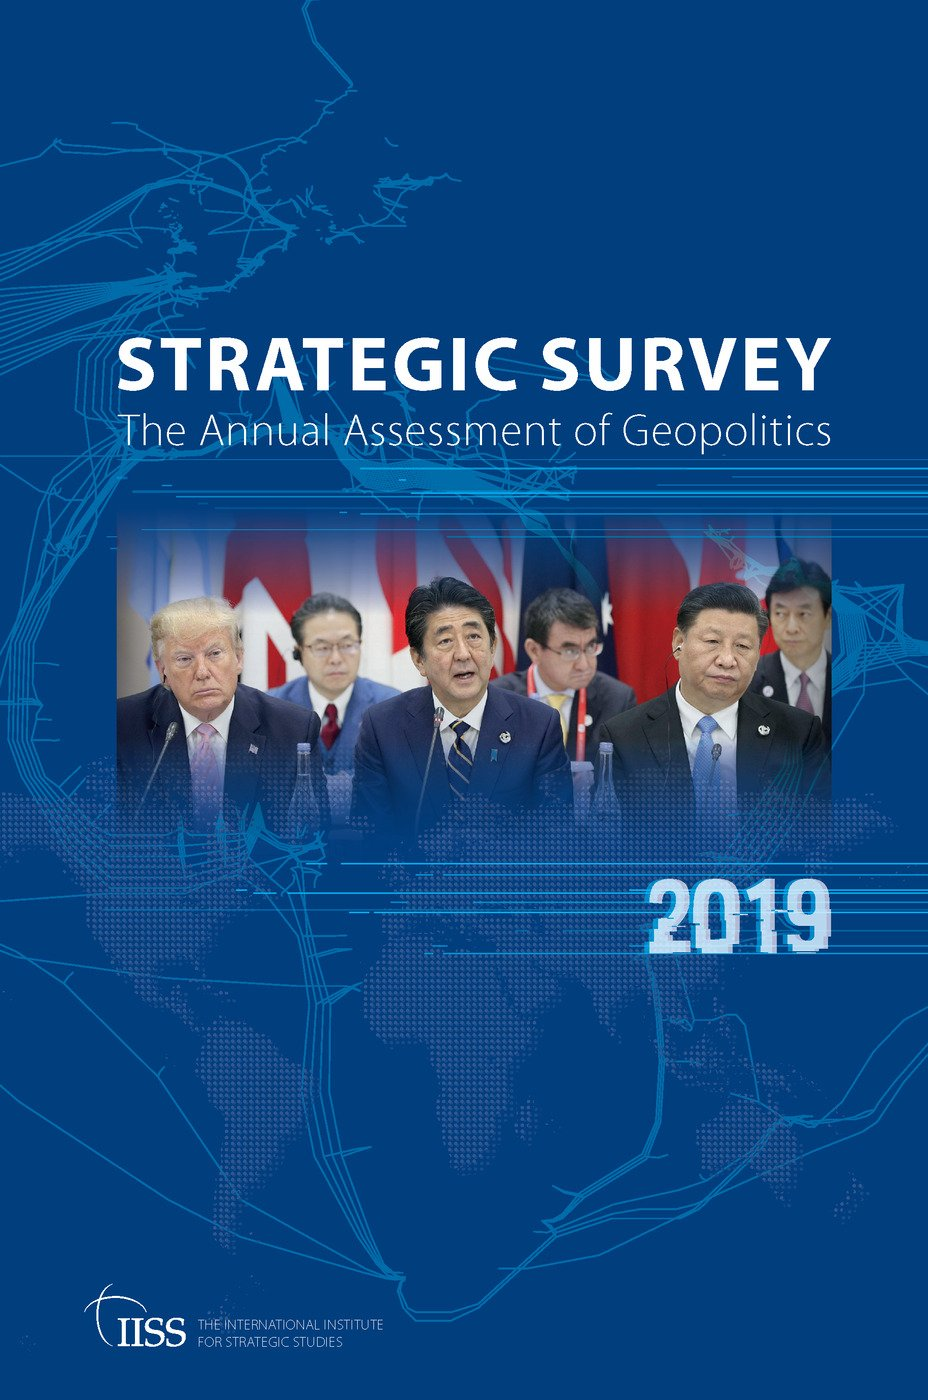 The Strategic Survey 2019: The Annual Assessment of Geopolitics book cover